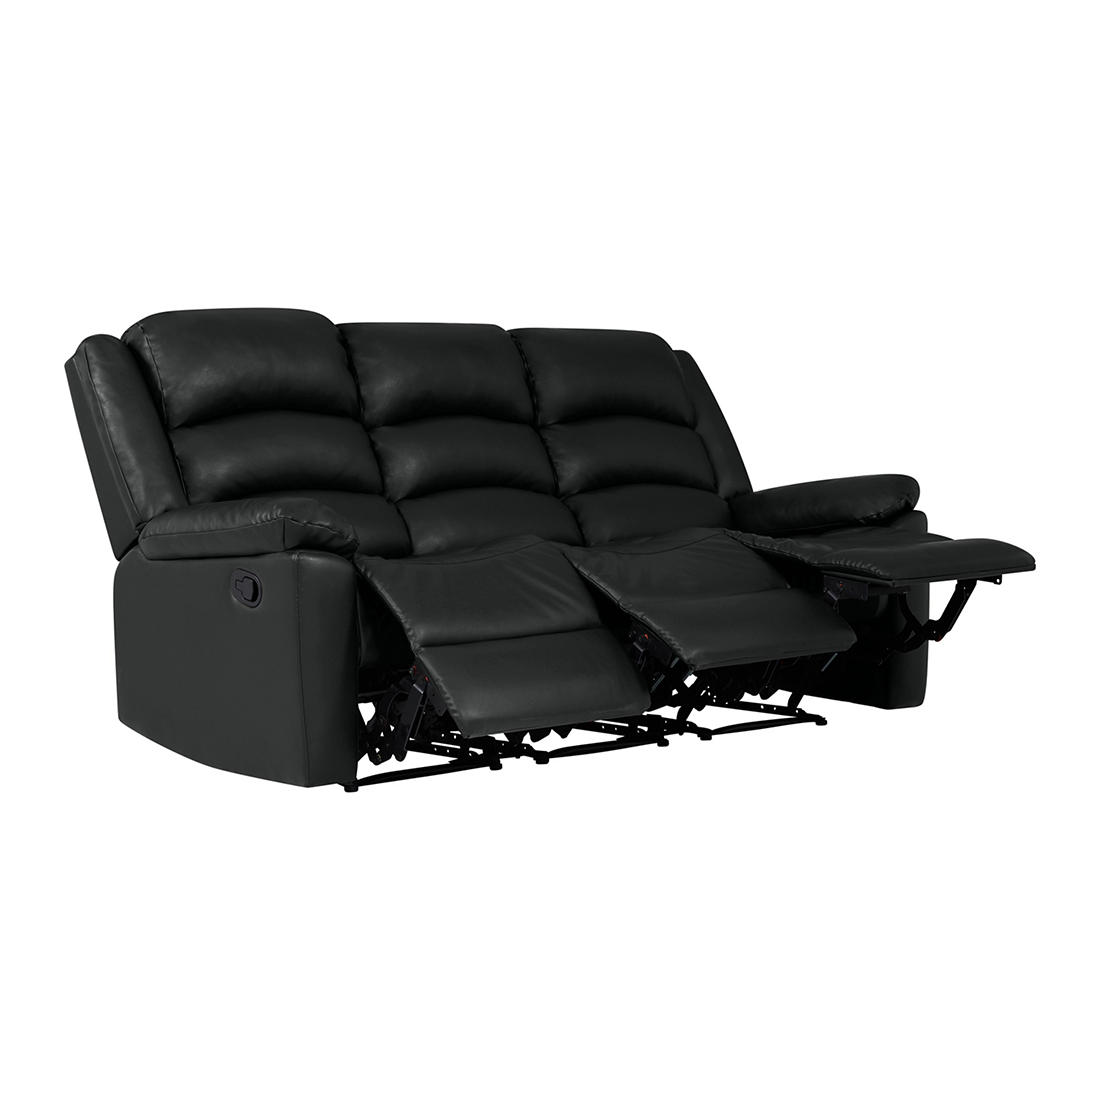 Peachy Prolounger Fabric Wall Hugger Recliner Sofa 3 Seats Black Gmtry Best Dining Table And Chair Ideas Images Gmtryco